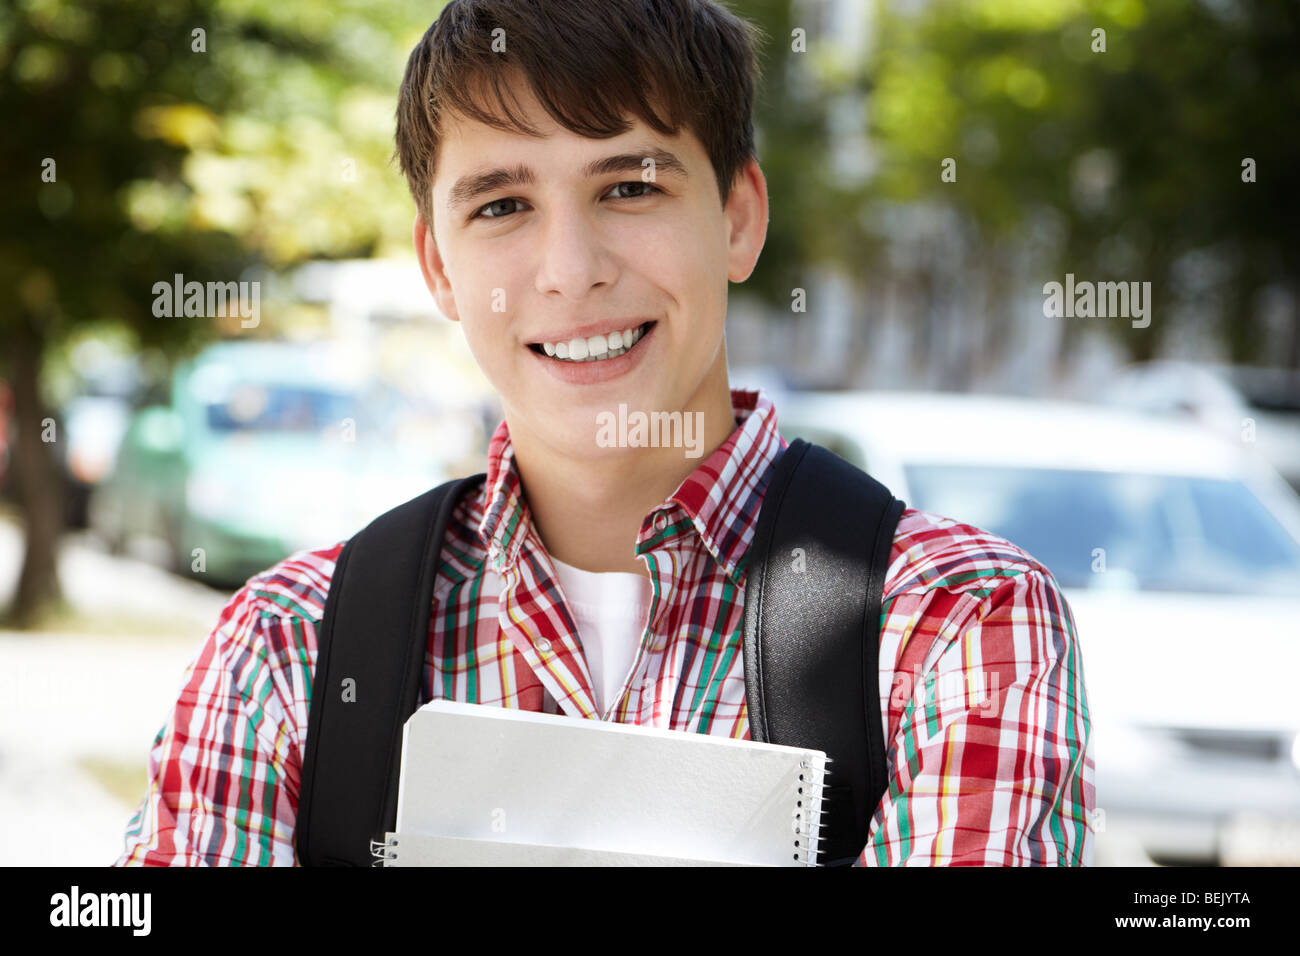 student between classes, selective focus on eye - Stock Image